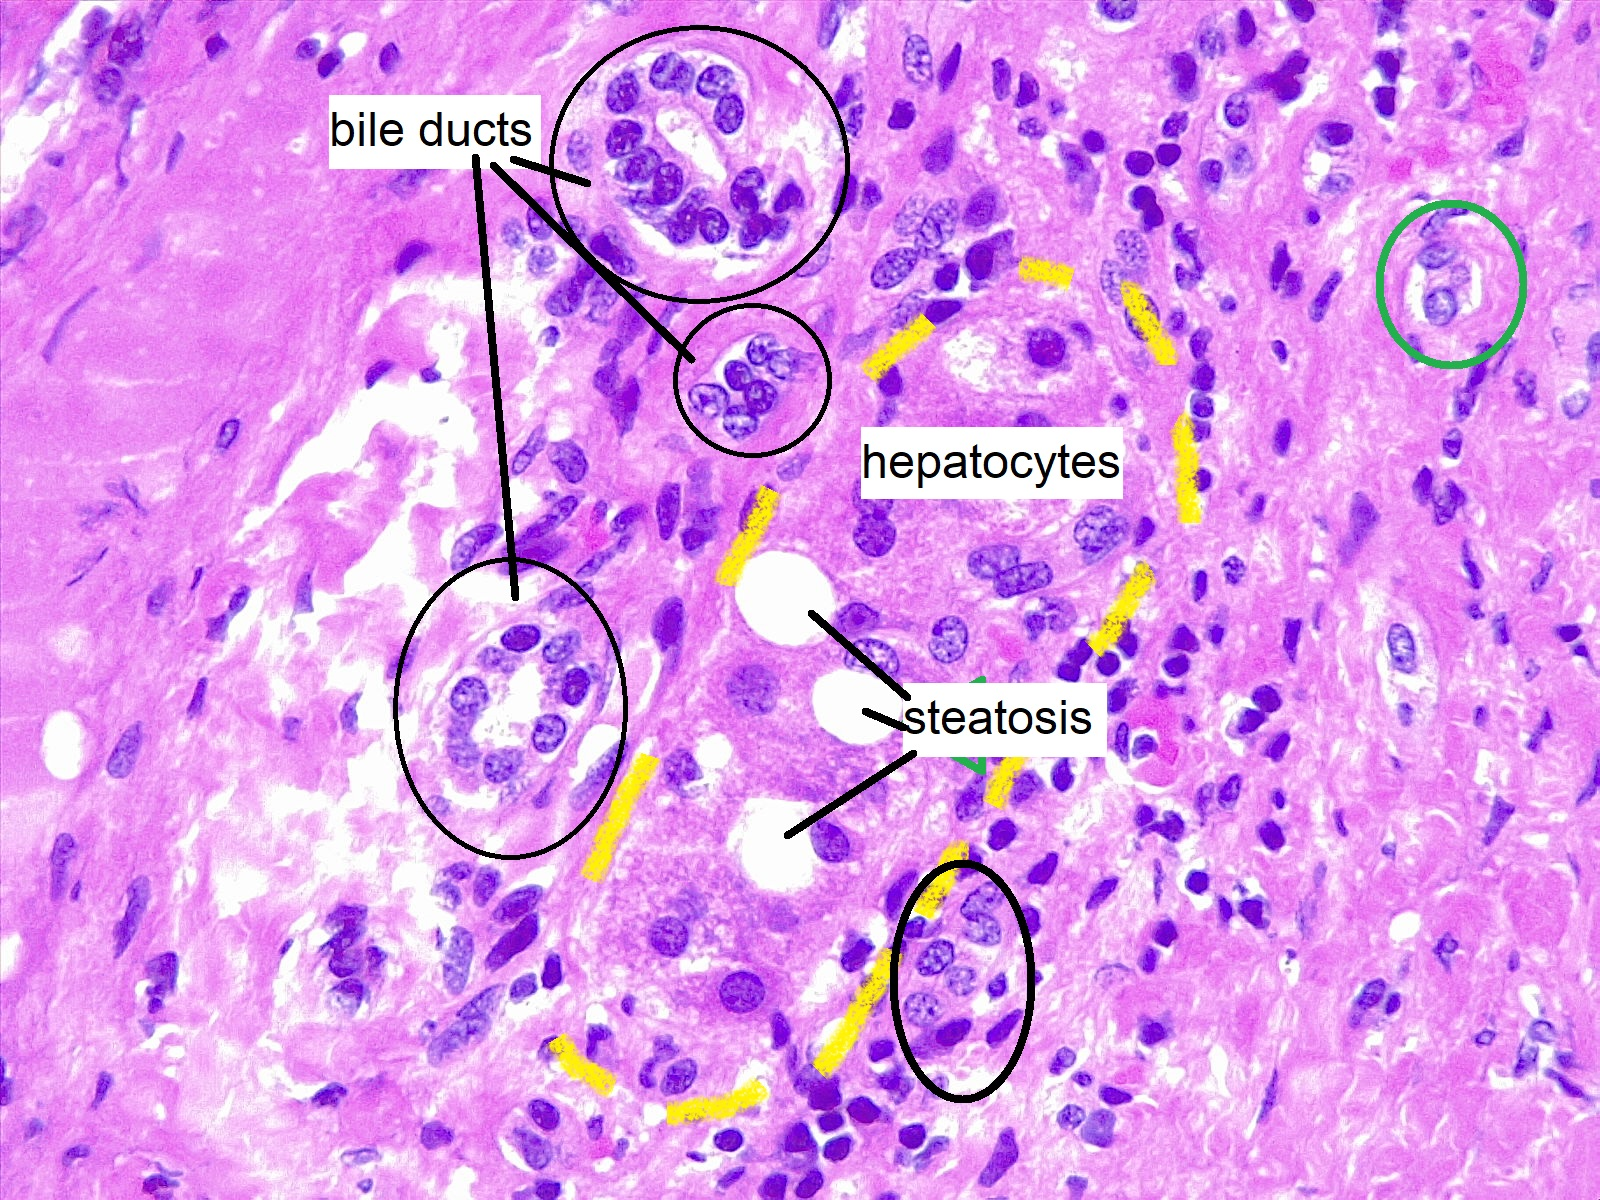 Liver biopsy, hepatic steatosis. In this field a group of hepatocytes (yellow dashes) is trapped in an altered portal tract, due to long-standing hepatitis. Bile ducts are fragmented and multiple. Most of the small cells surrounding the portal tract are lymphocytes.